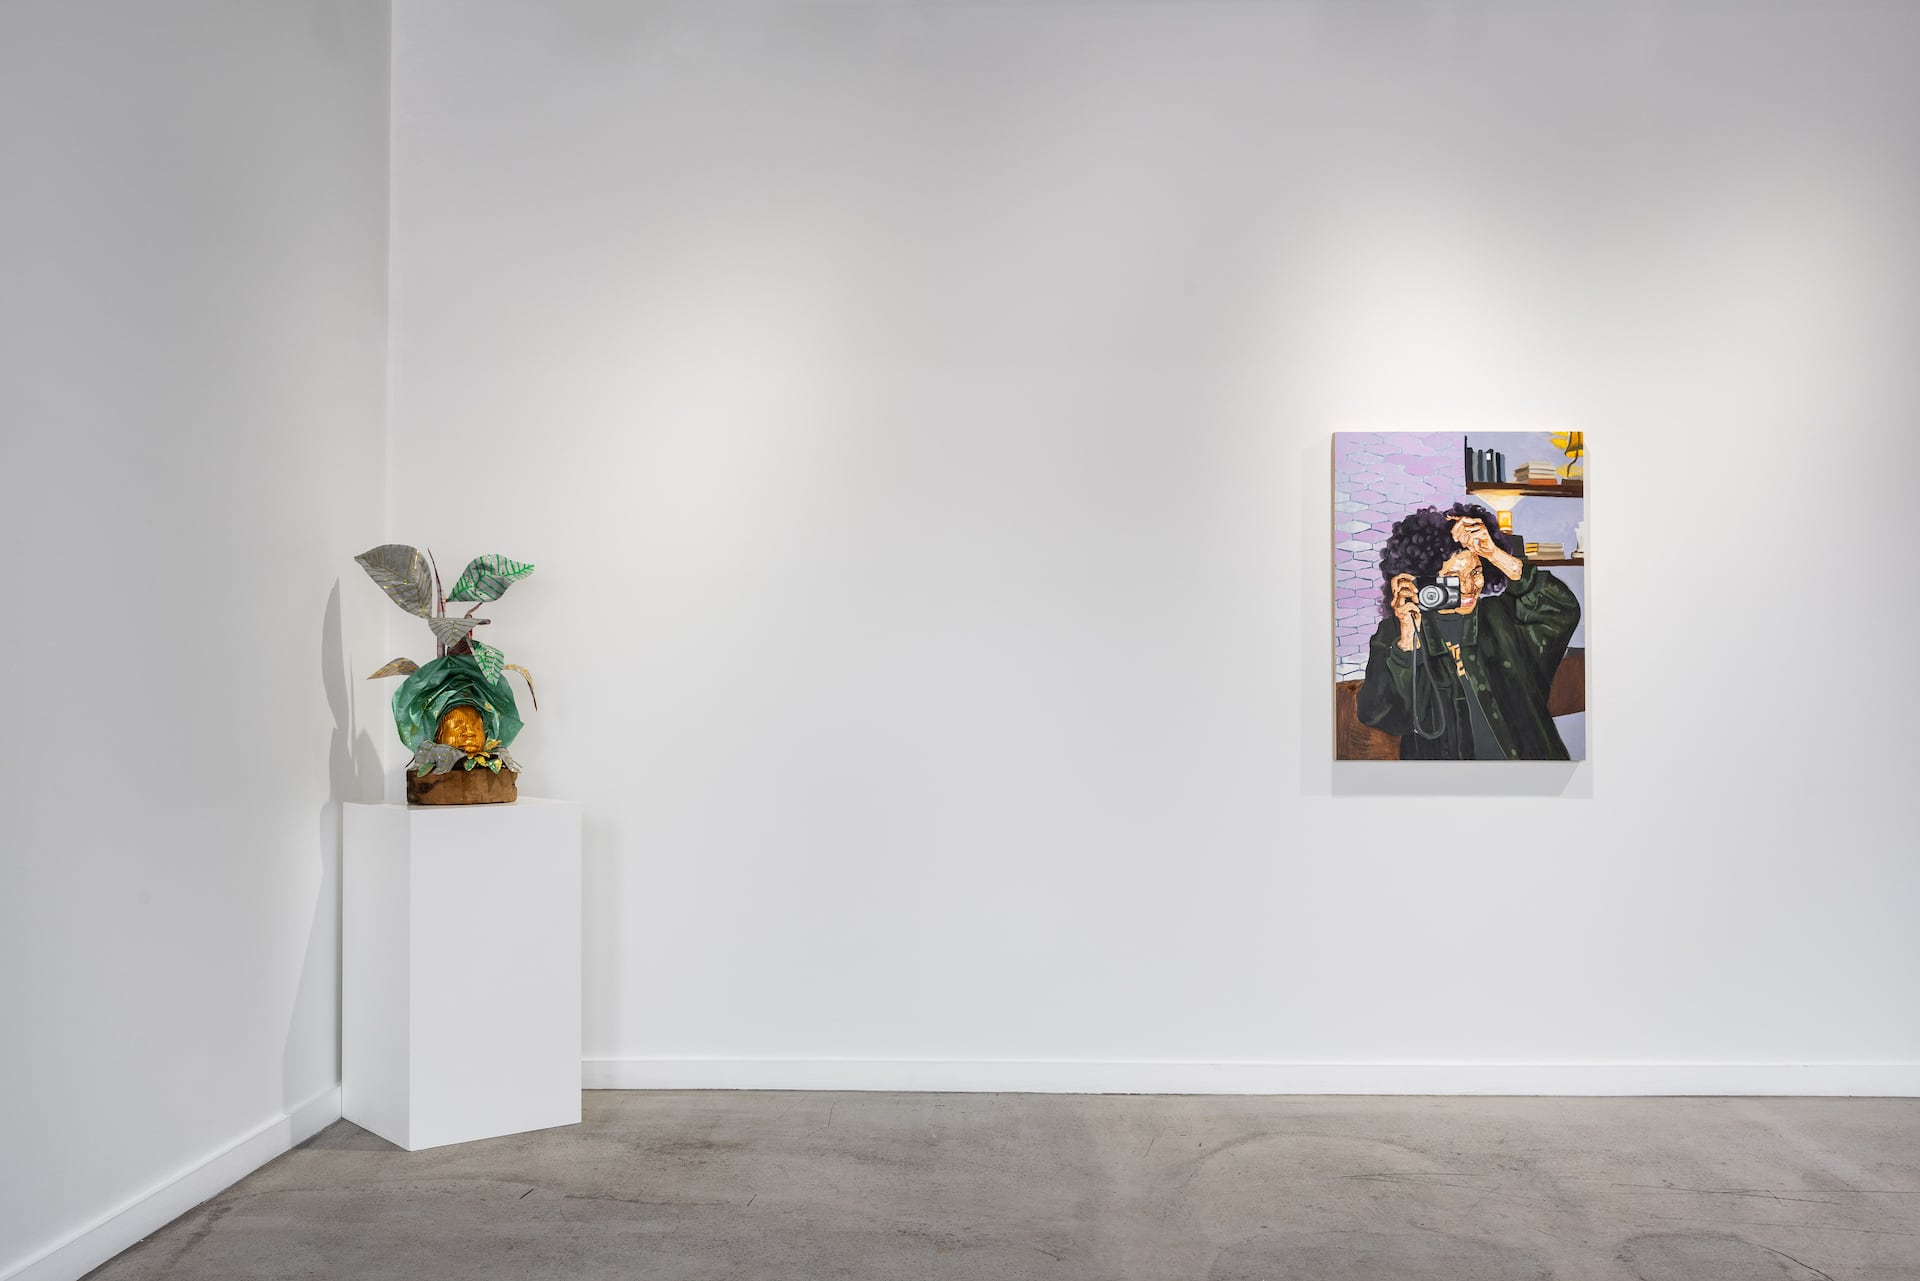 SAU_Installation view_1